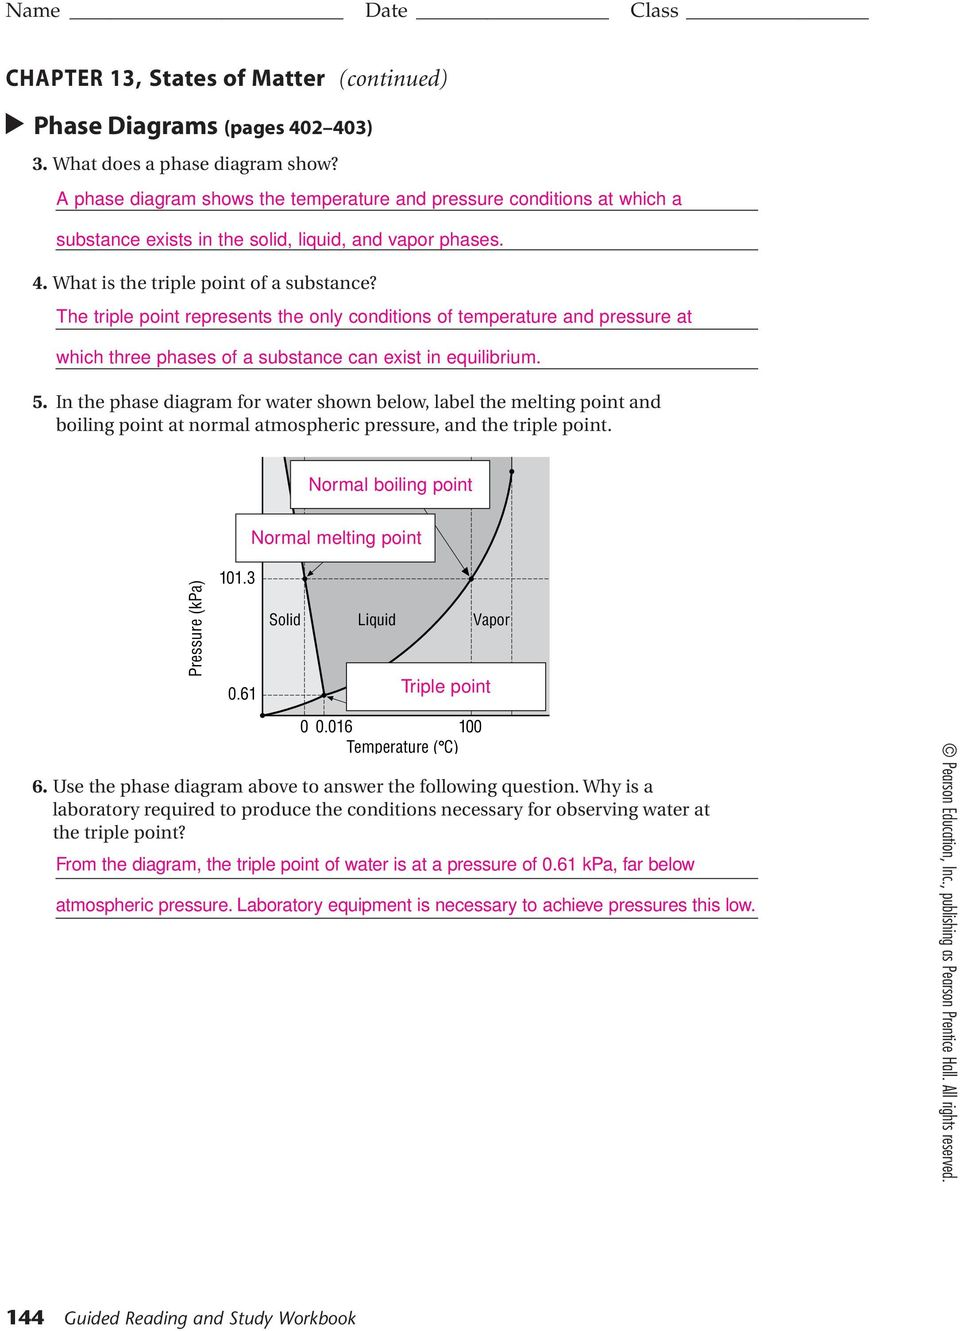 medium resolution of the triple point represents the only conditions of temperature and pressure at which three phases of